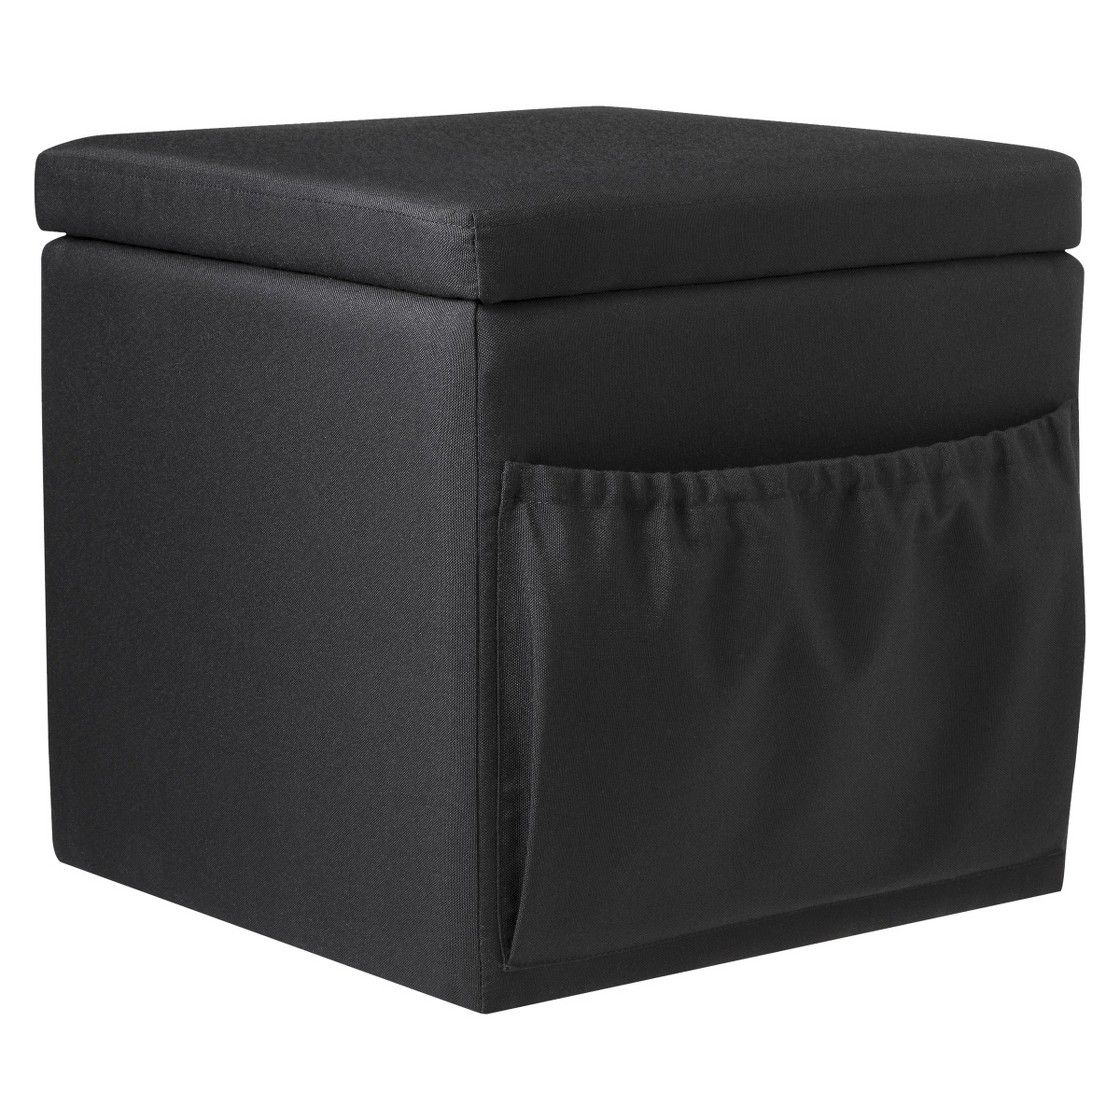 Fabulous Cheap 20 Dollar Storage Ottoman With Pocket Black From Ocoug Best Dining Table And Chair Ideas Images Ocougorg